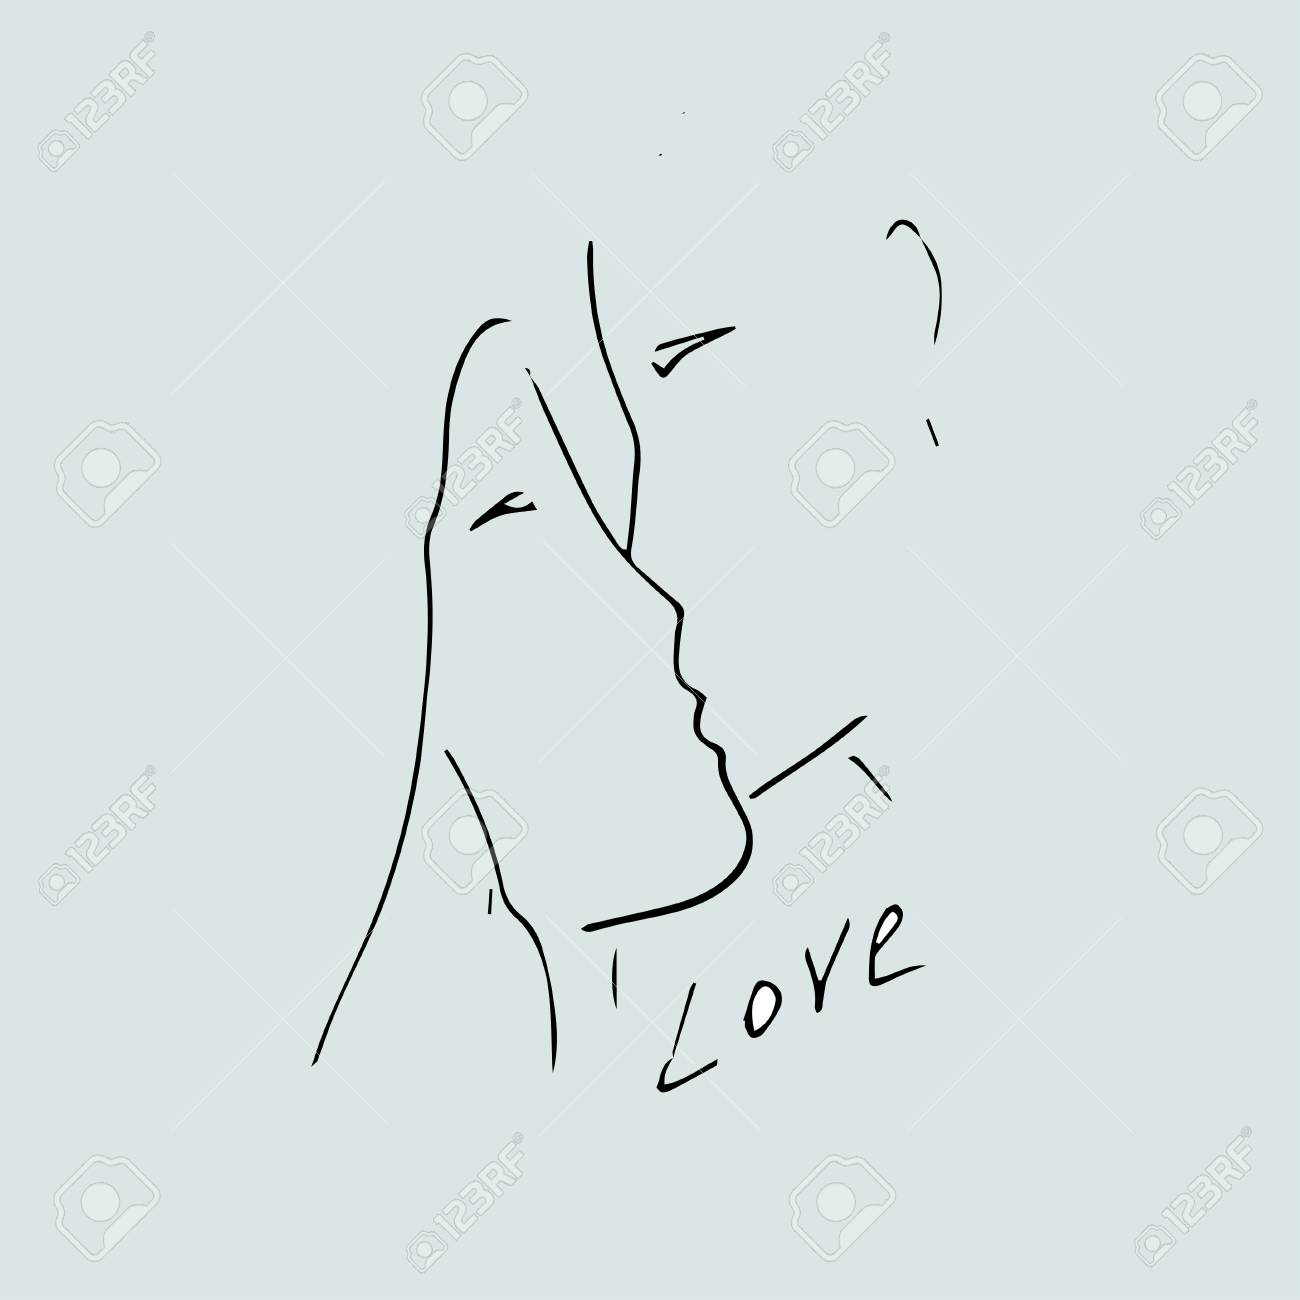 Love Idea Boy And Girl Kiss Outline Drawing Royalty Free Cliparts